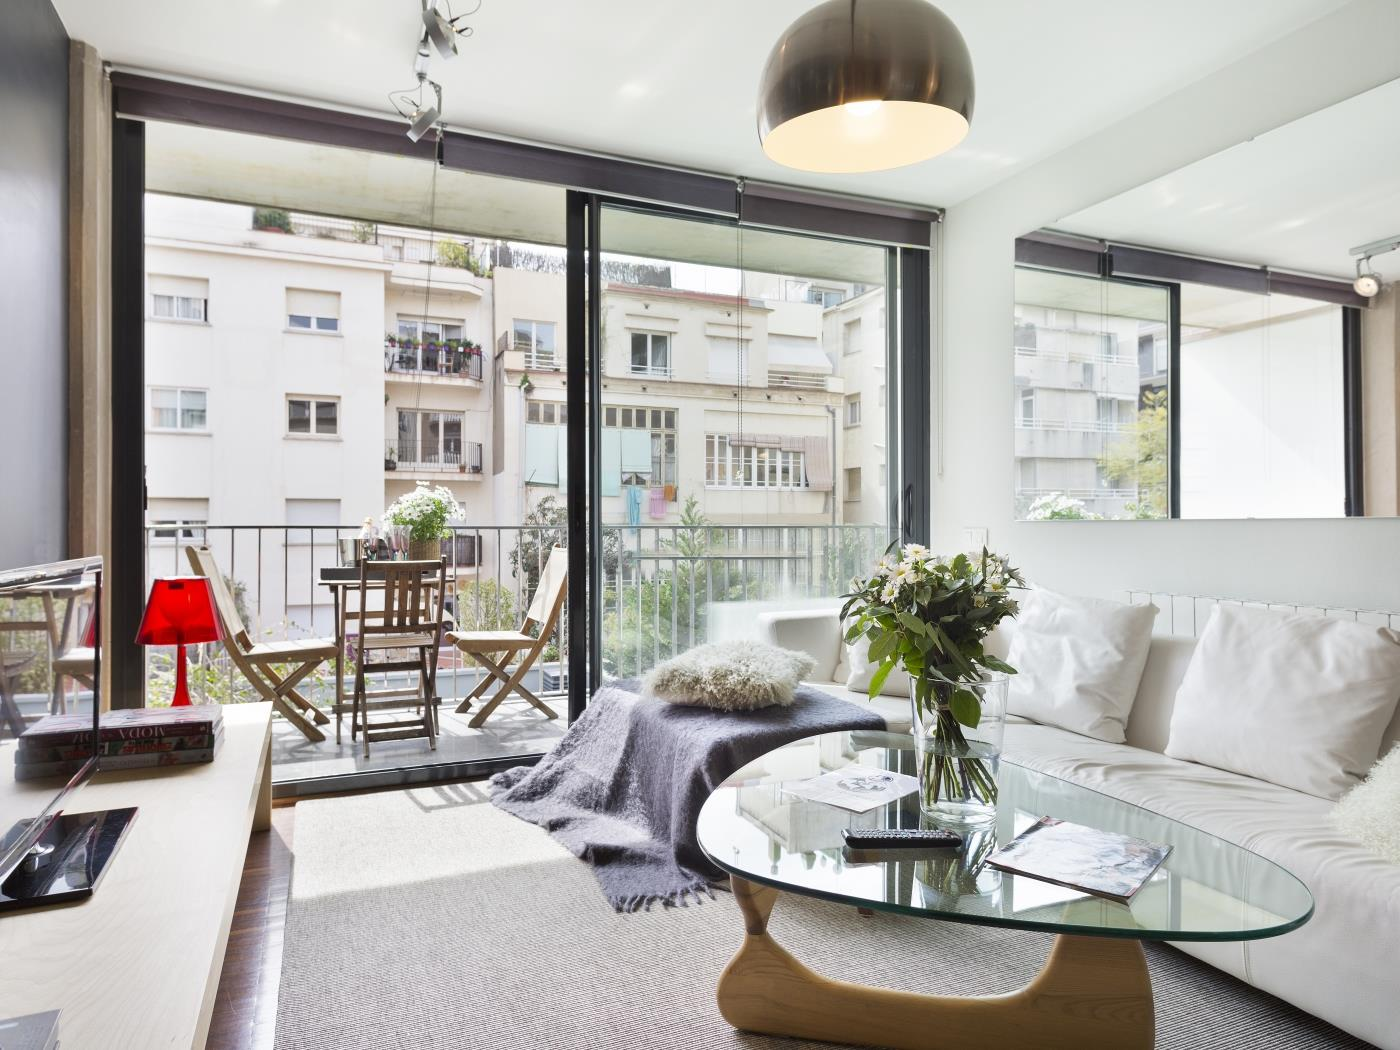 Executive Apartment in Sarrià – San Gervasi - My Space Barcelona Aпартаменты